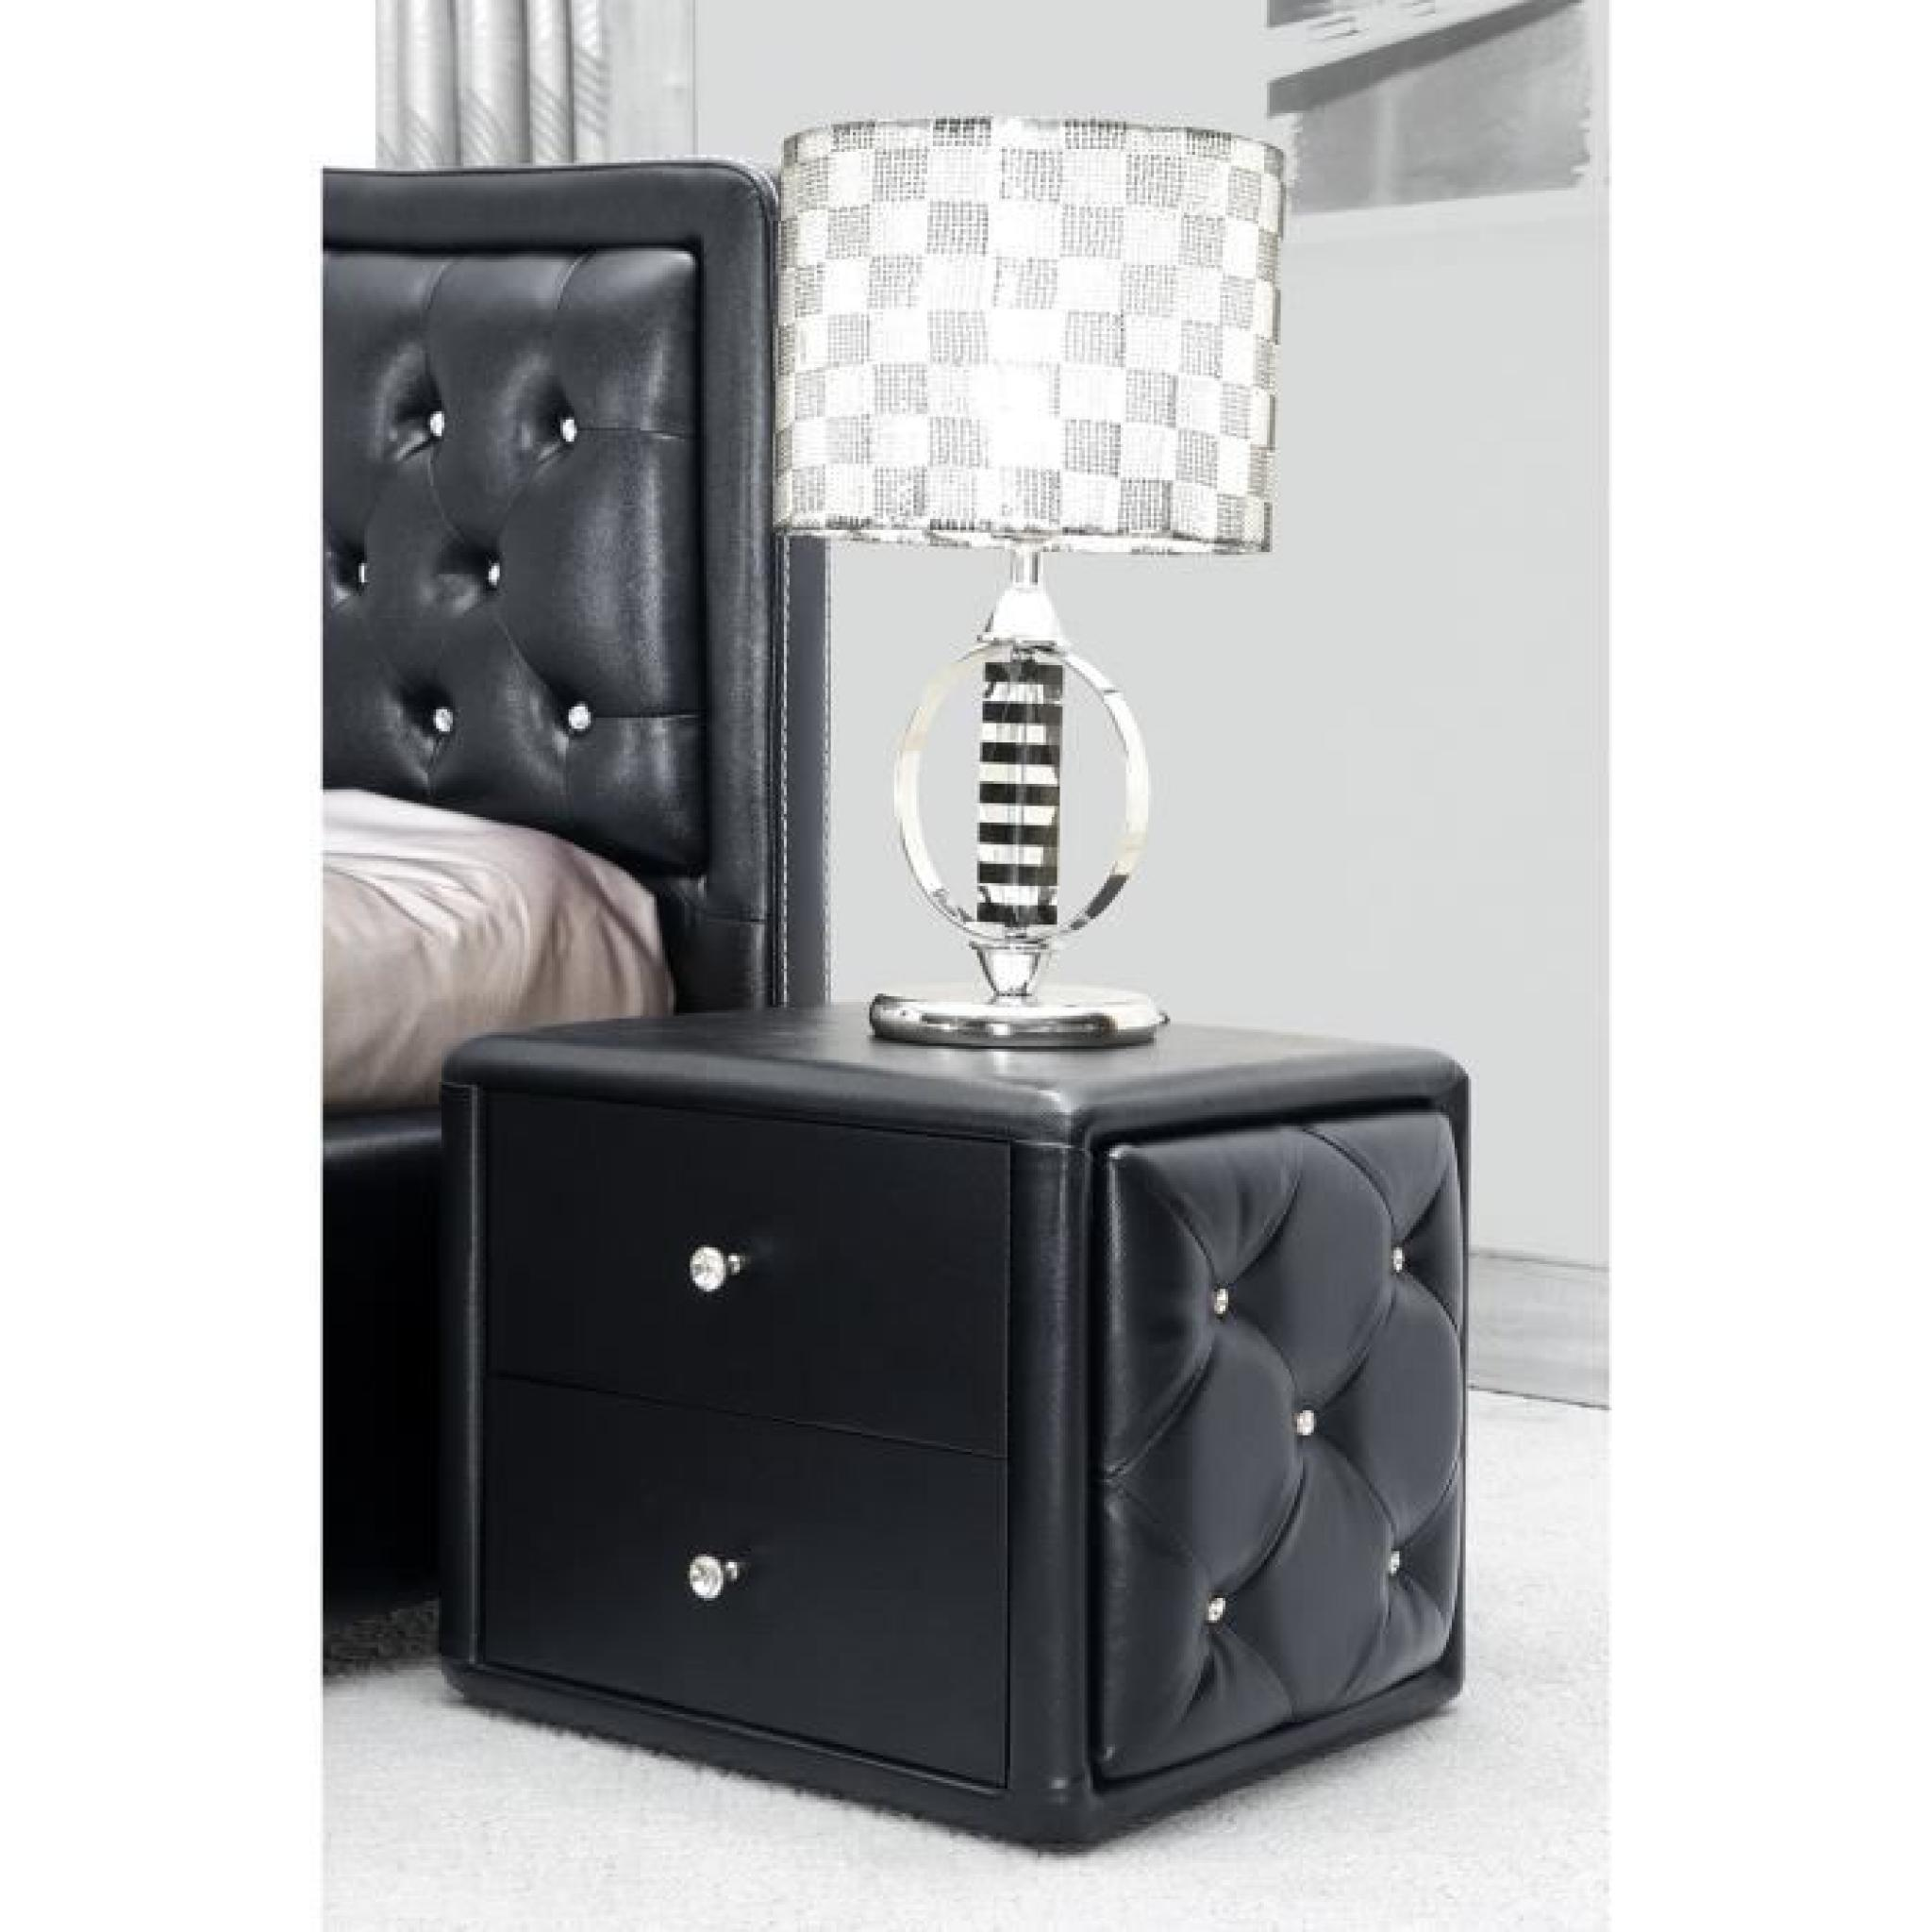 table de nuit noire capitonn e de strass achat vente. Black Bedroom Furniture Sets. Home Design Ideas